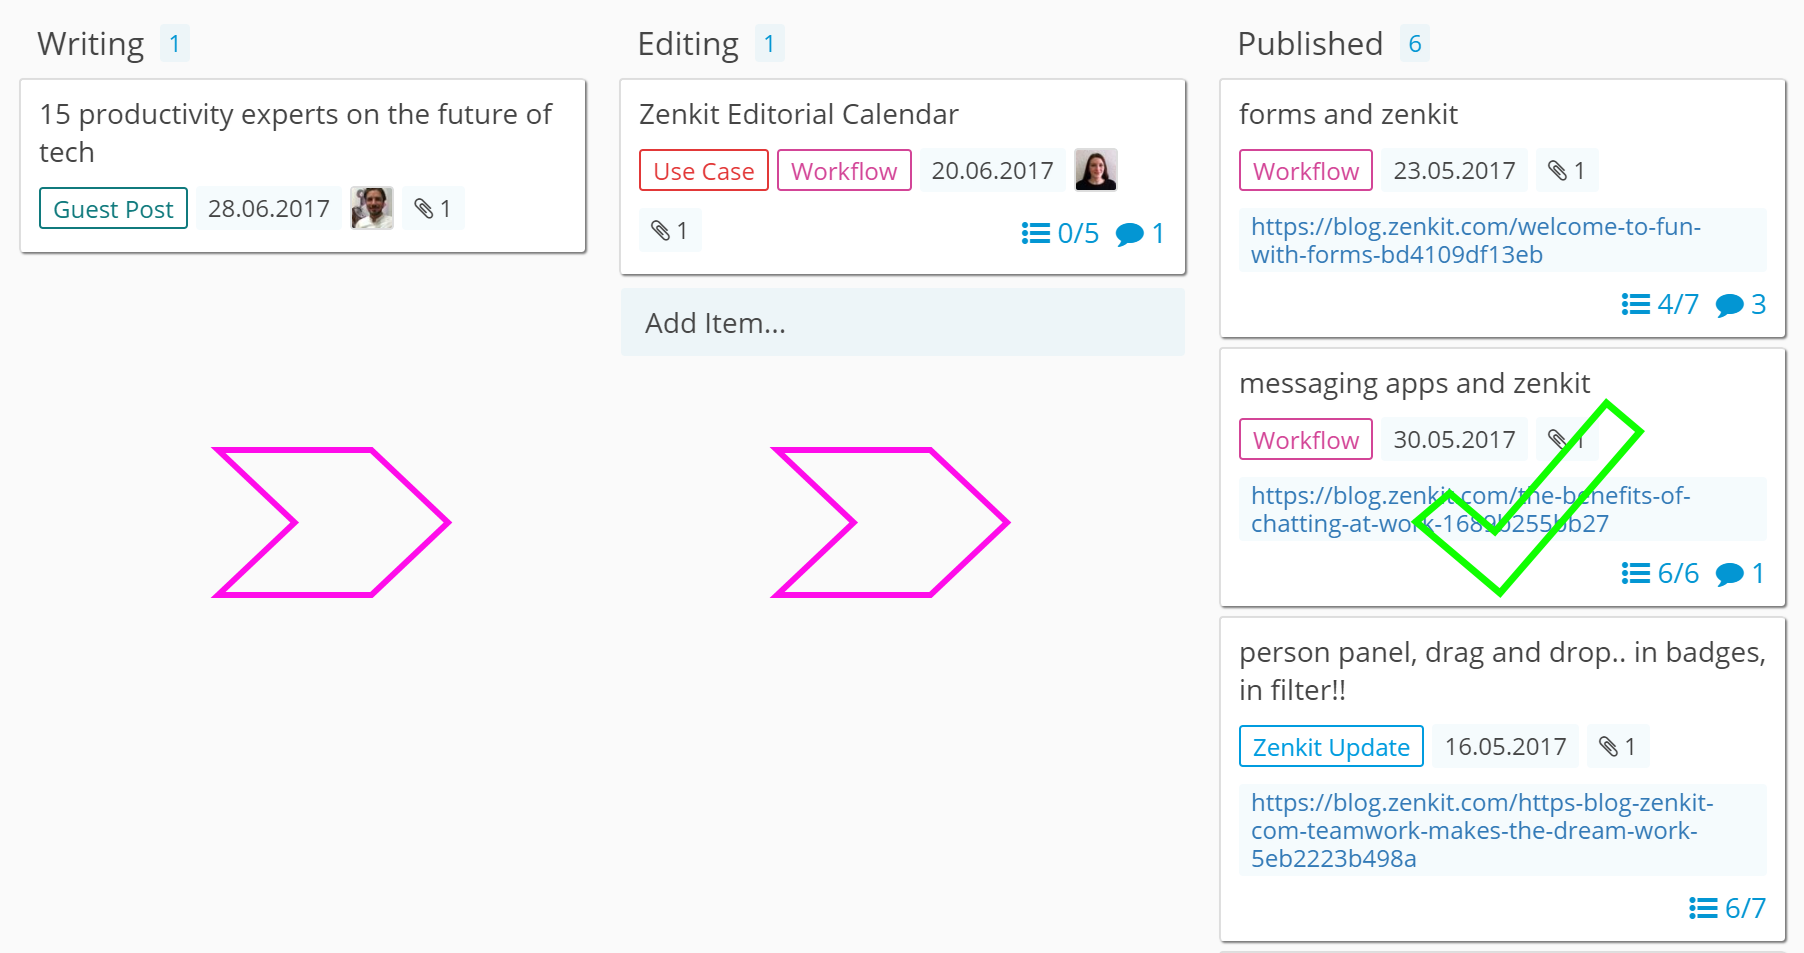 planning for success how to build your editorial calendar with zenkit